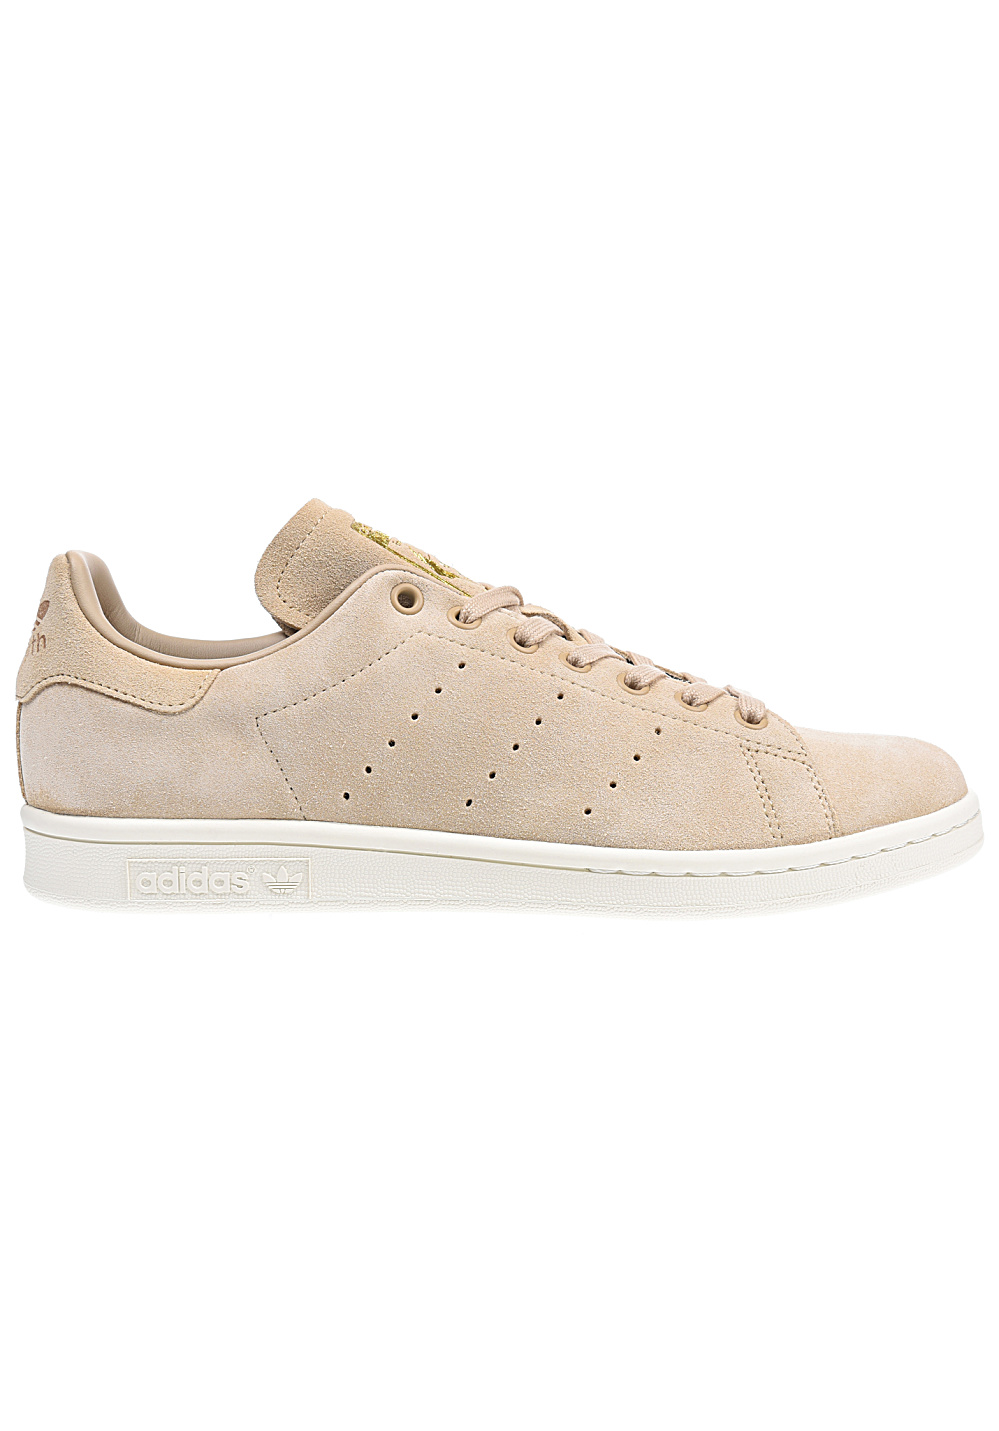 adidas stan smith sneakers voor heren beige planet. Black Bedroom Furniture Sets. Home Design Ideas